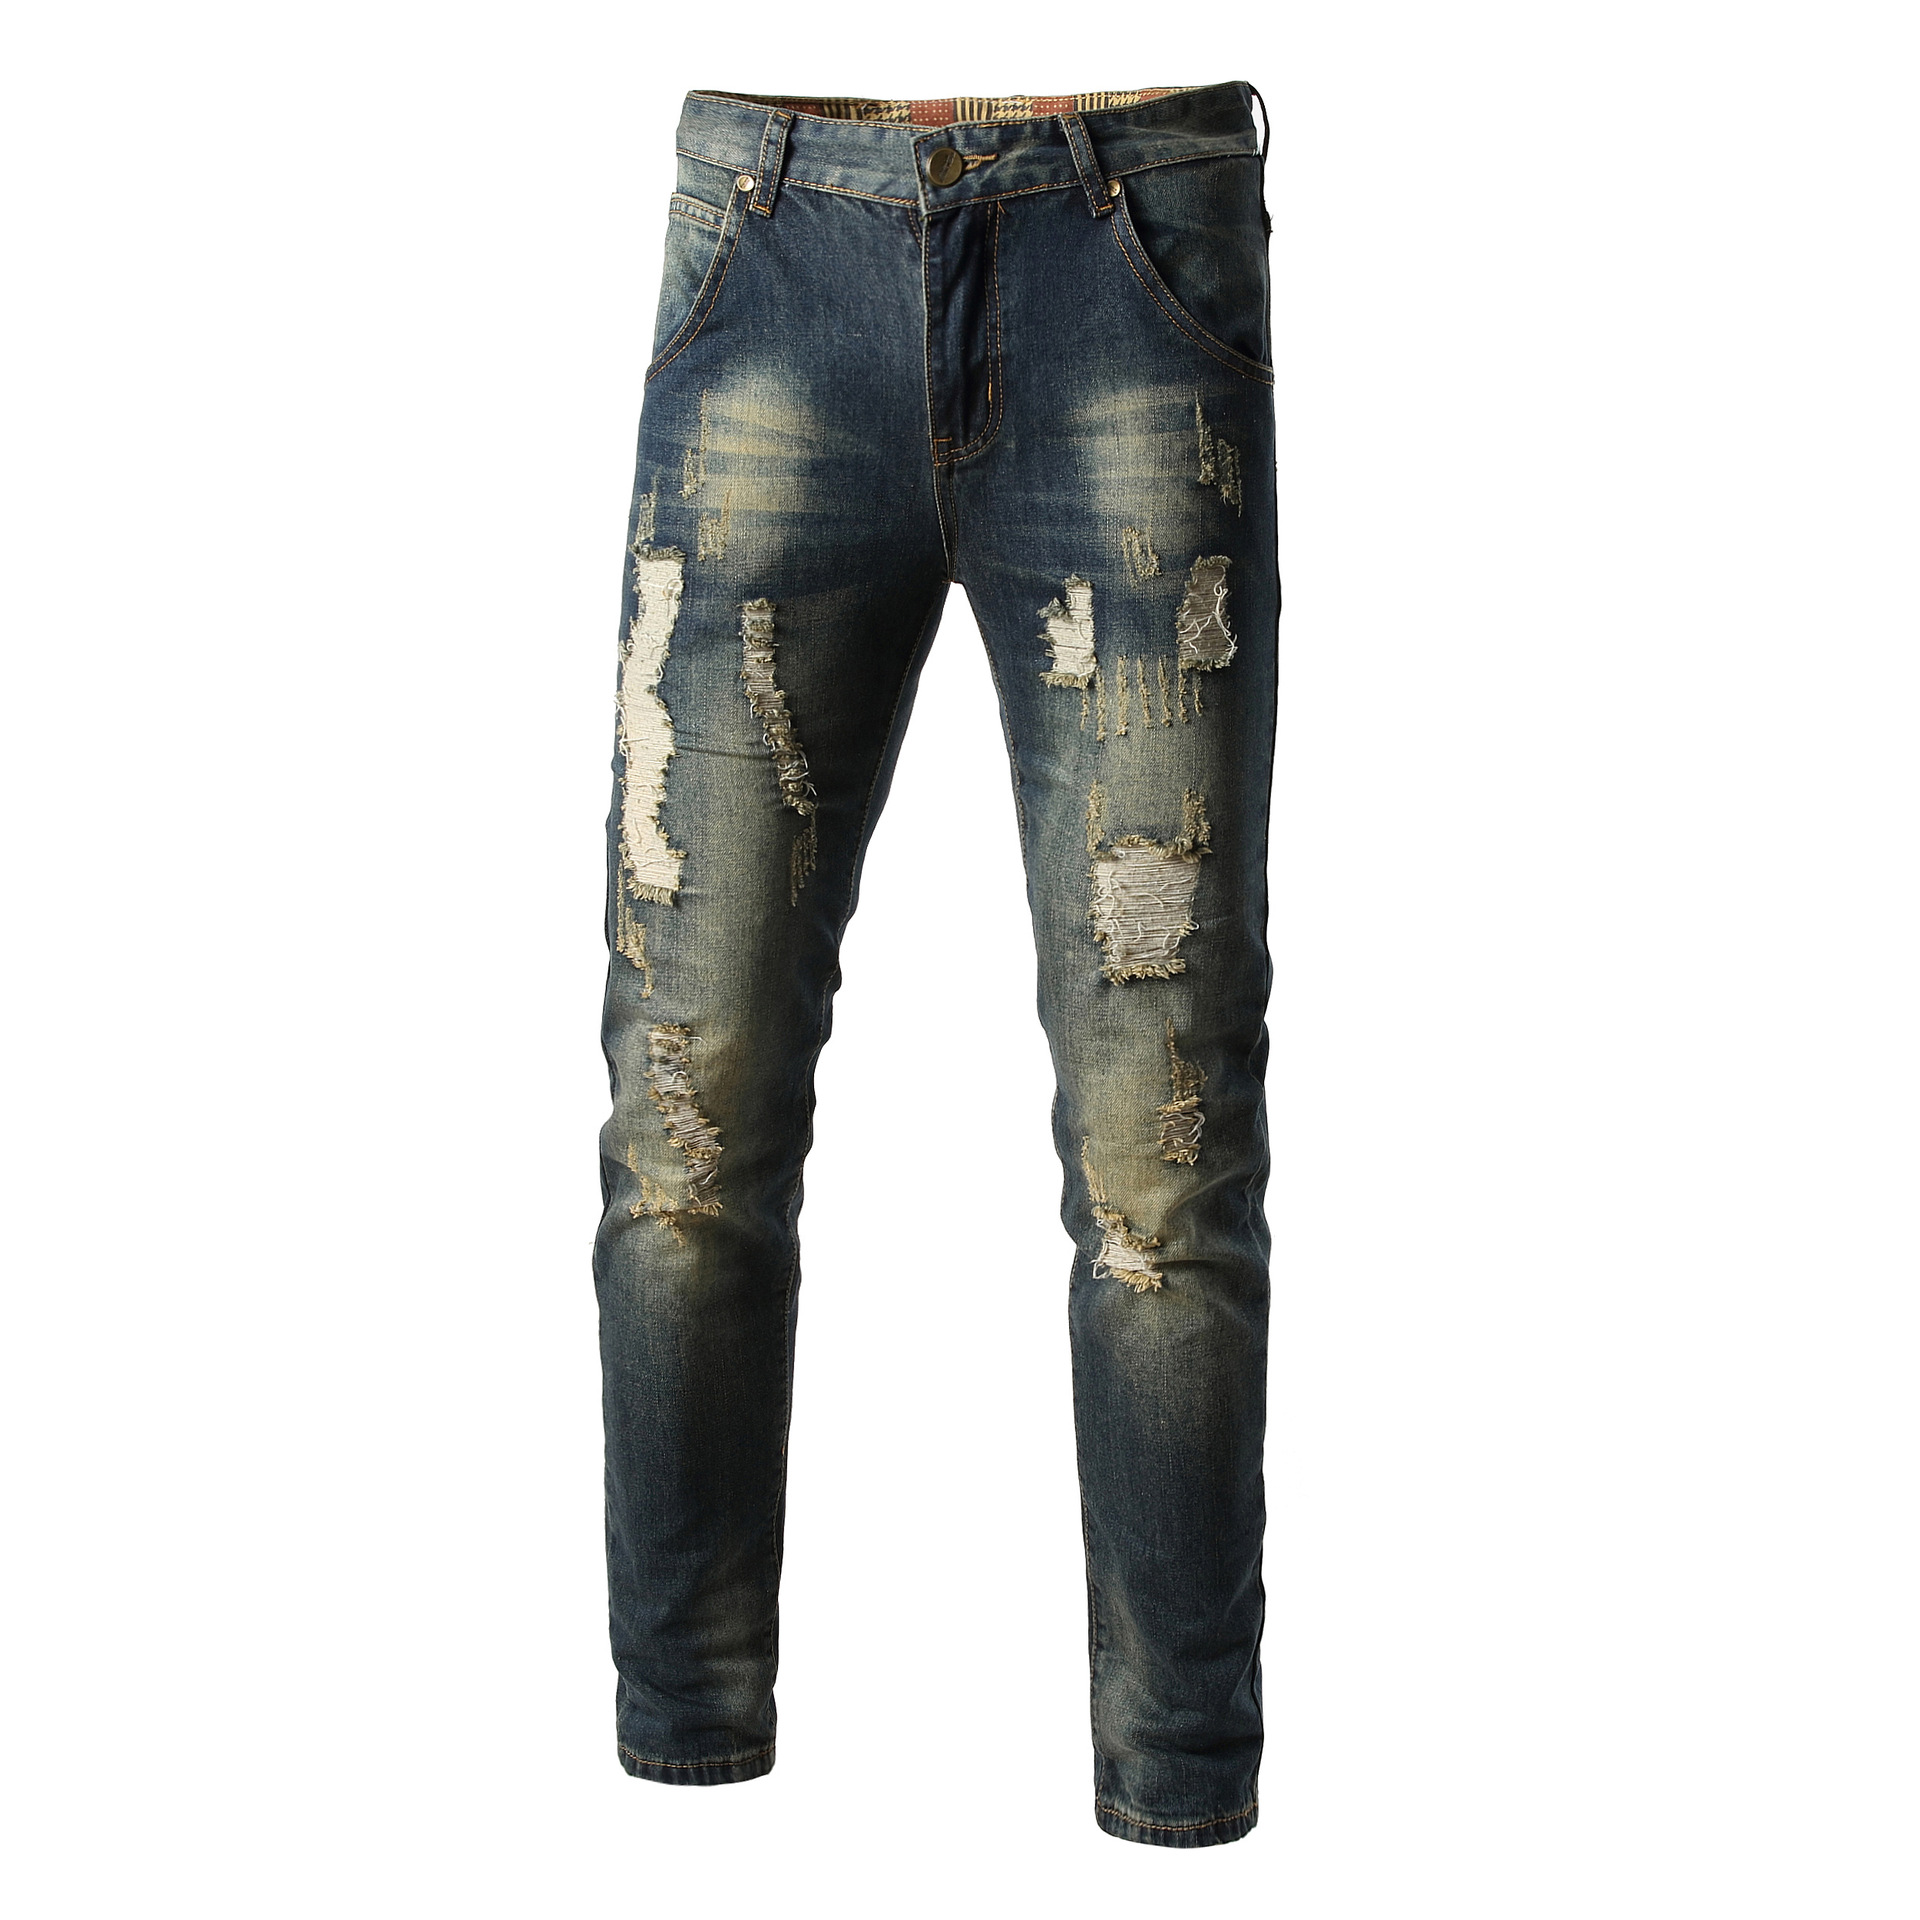 MEN'S WEAR With Holes Nostalgic Jeans Straight Slim Men Cowboy With Holes Trousers Men's